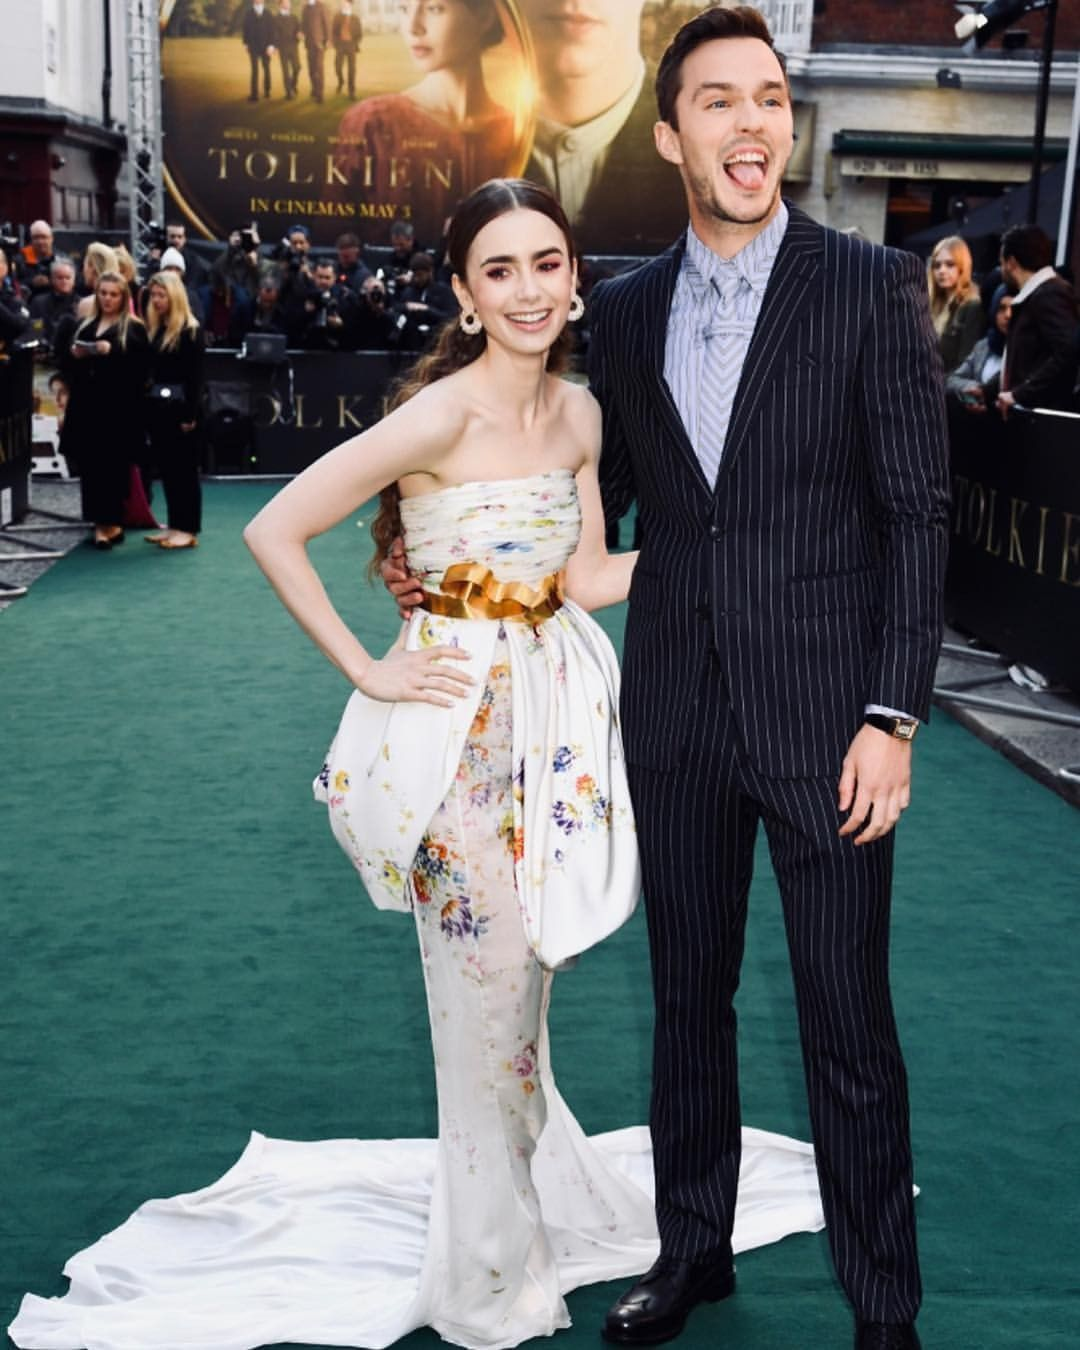 Pin by C Kas on Women's fashion | Lily collins dress, Lily ...